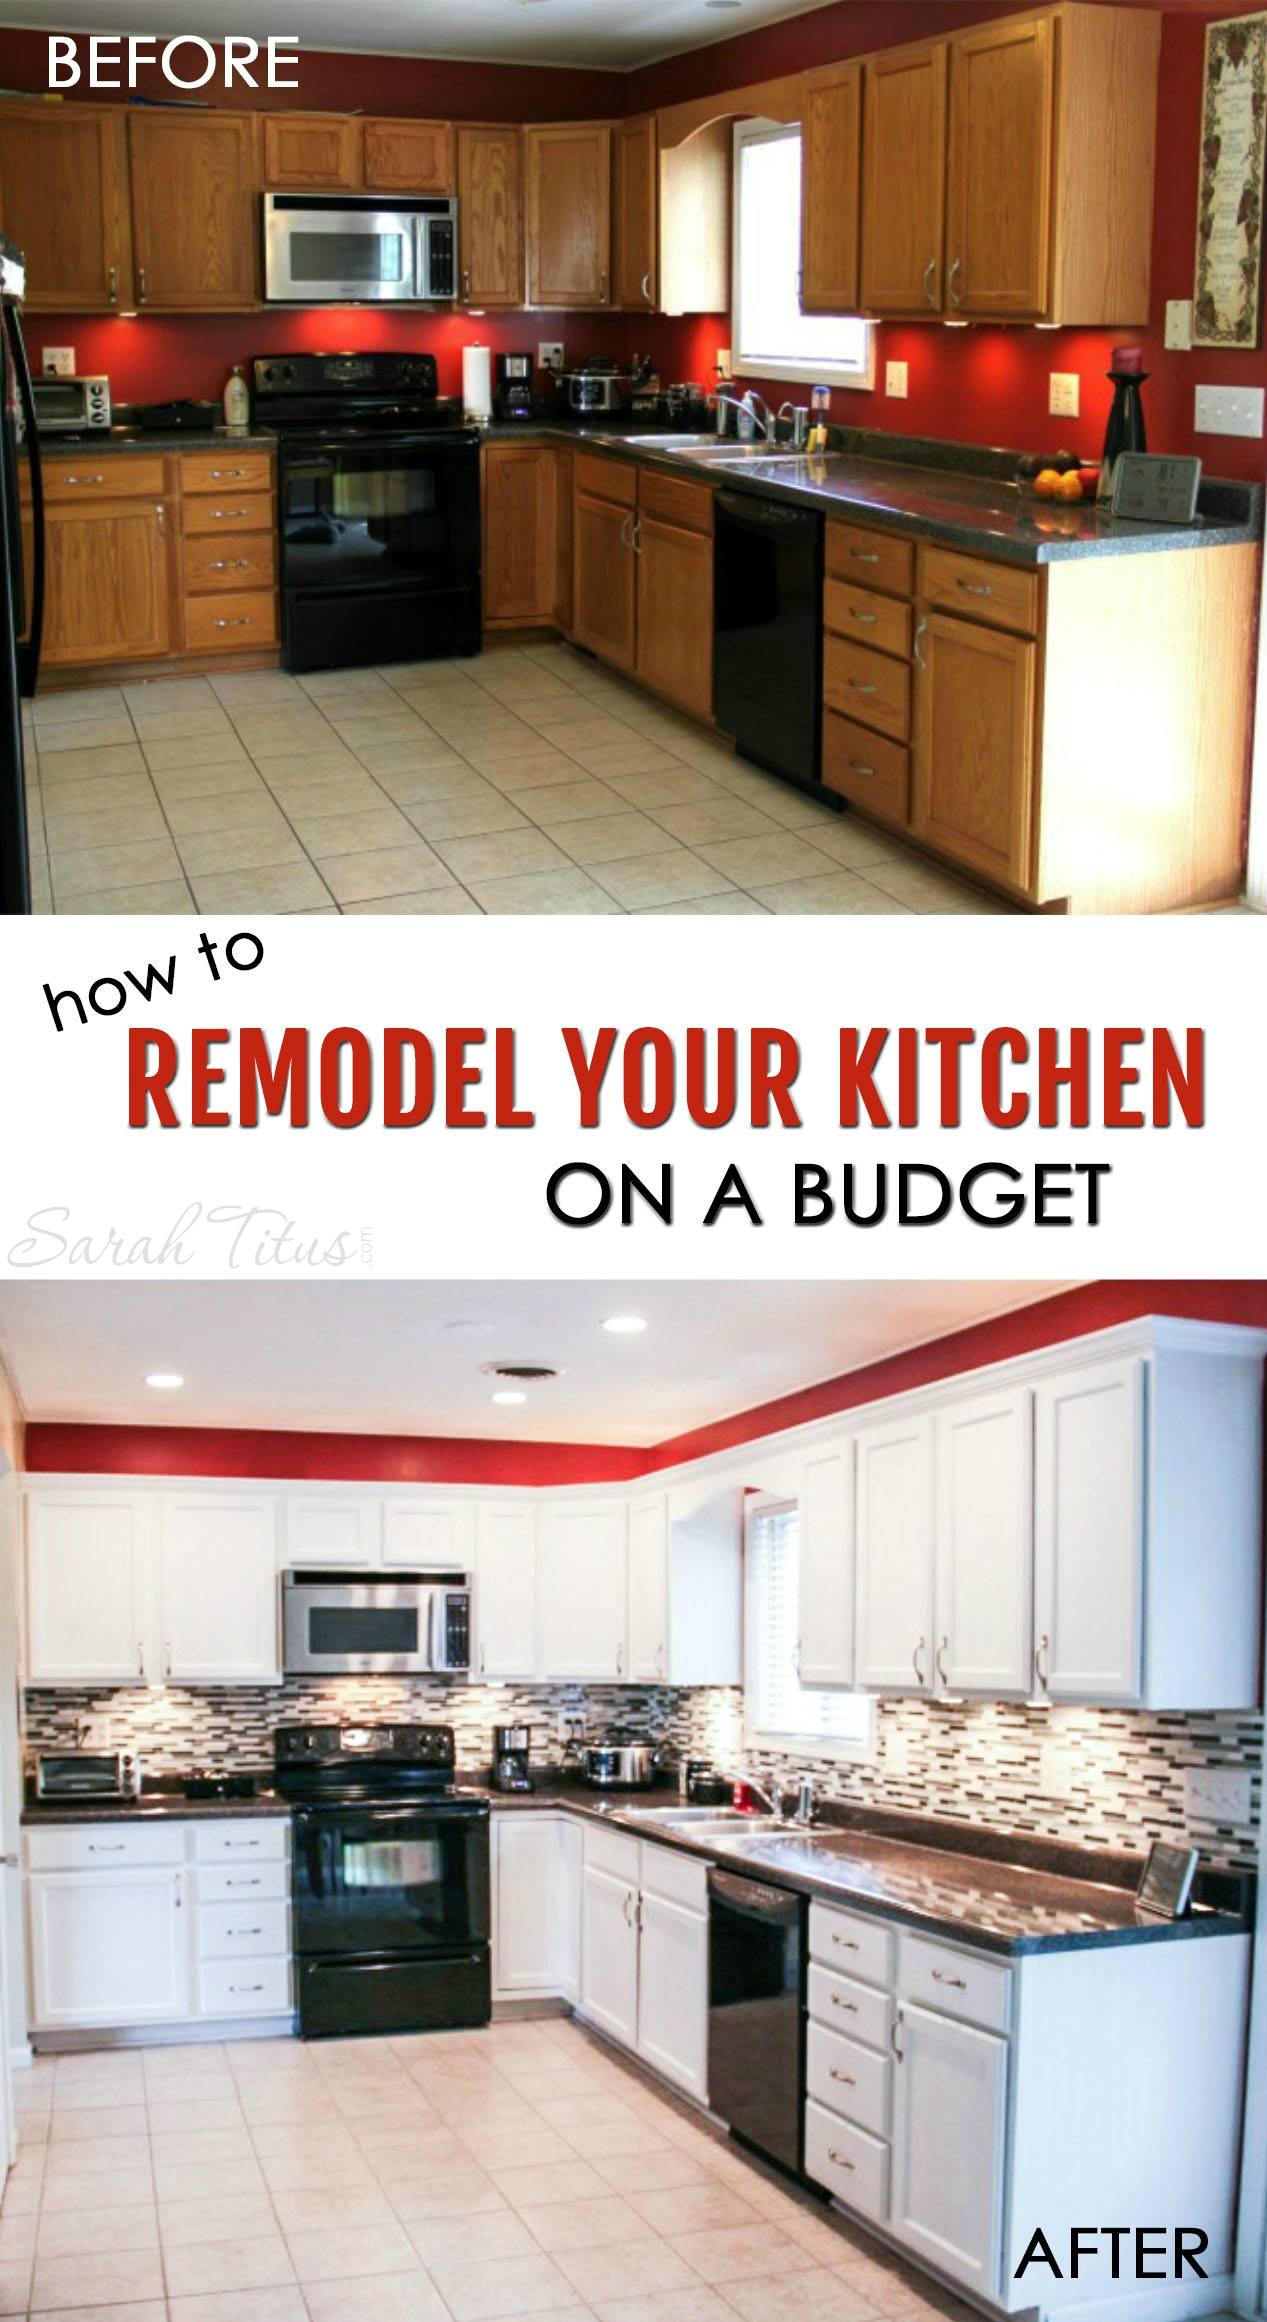 How to remodel your kitchen on a budget sarah titus for Budget kitchen cabinet ideas